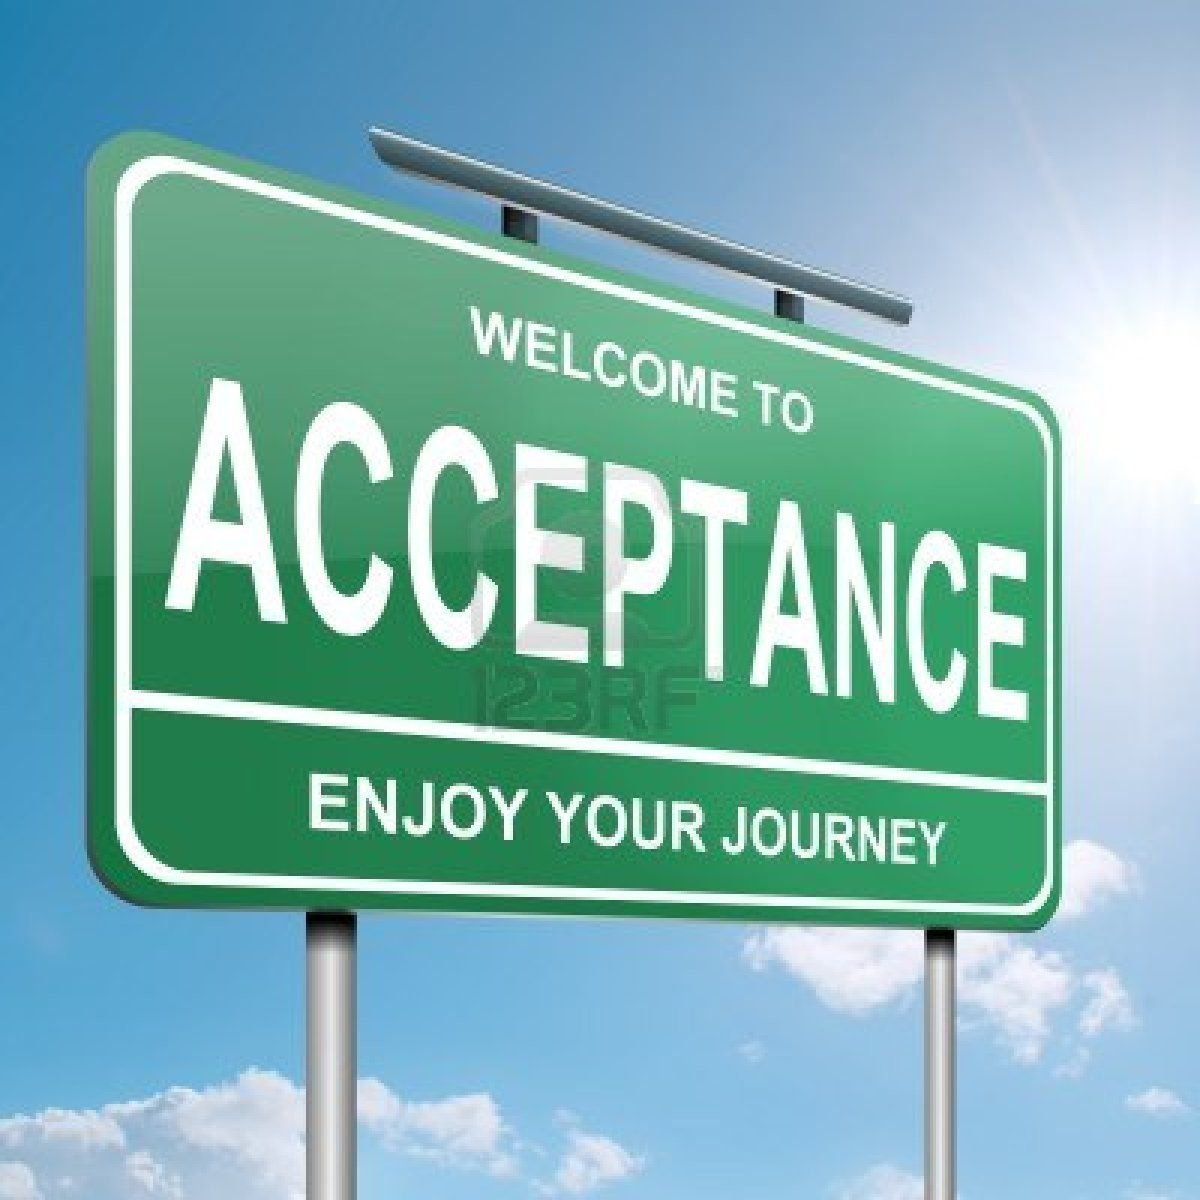 Welcome to Acceptance!